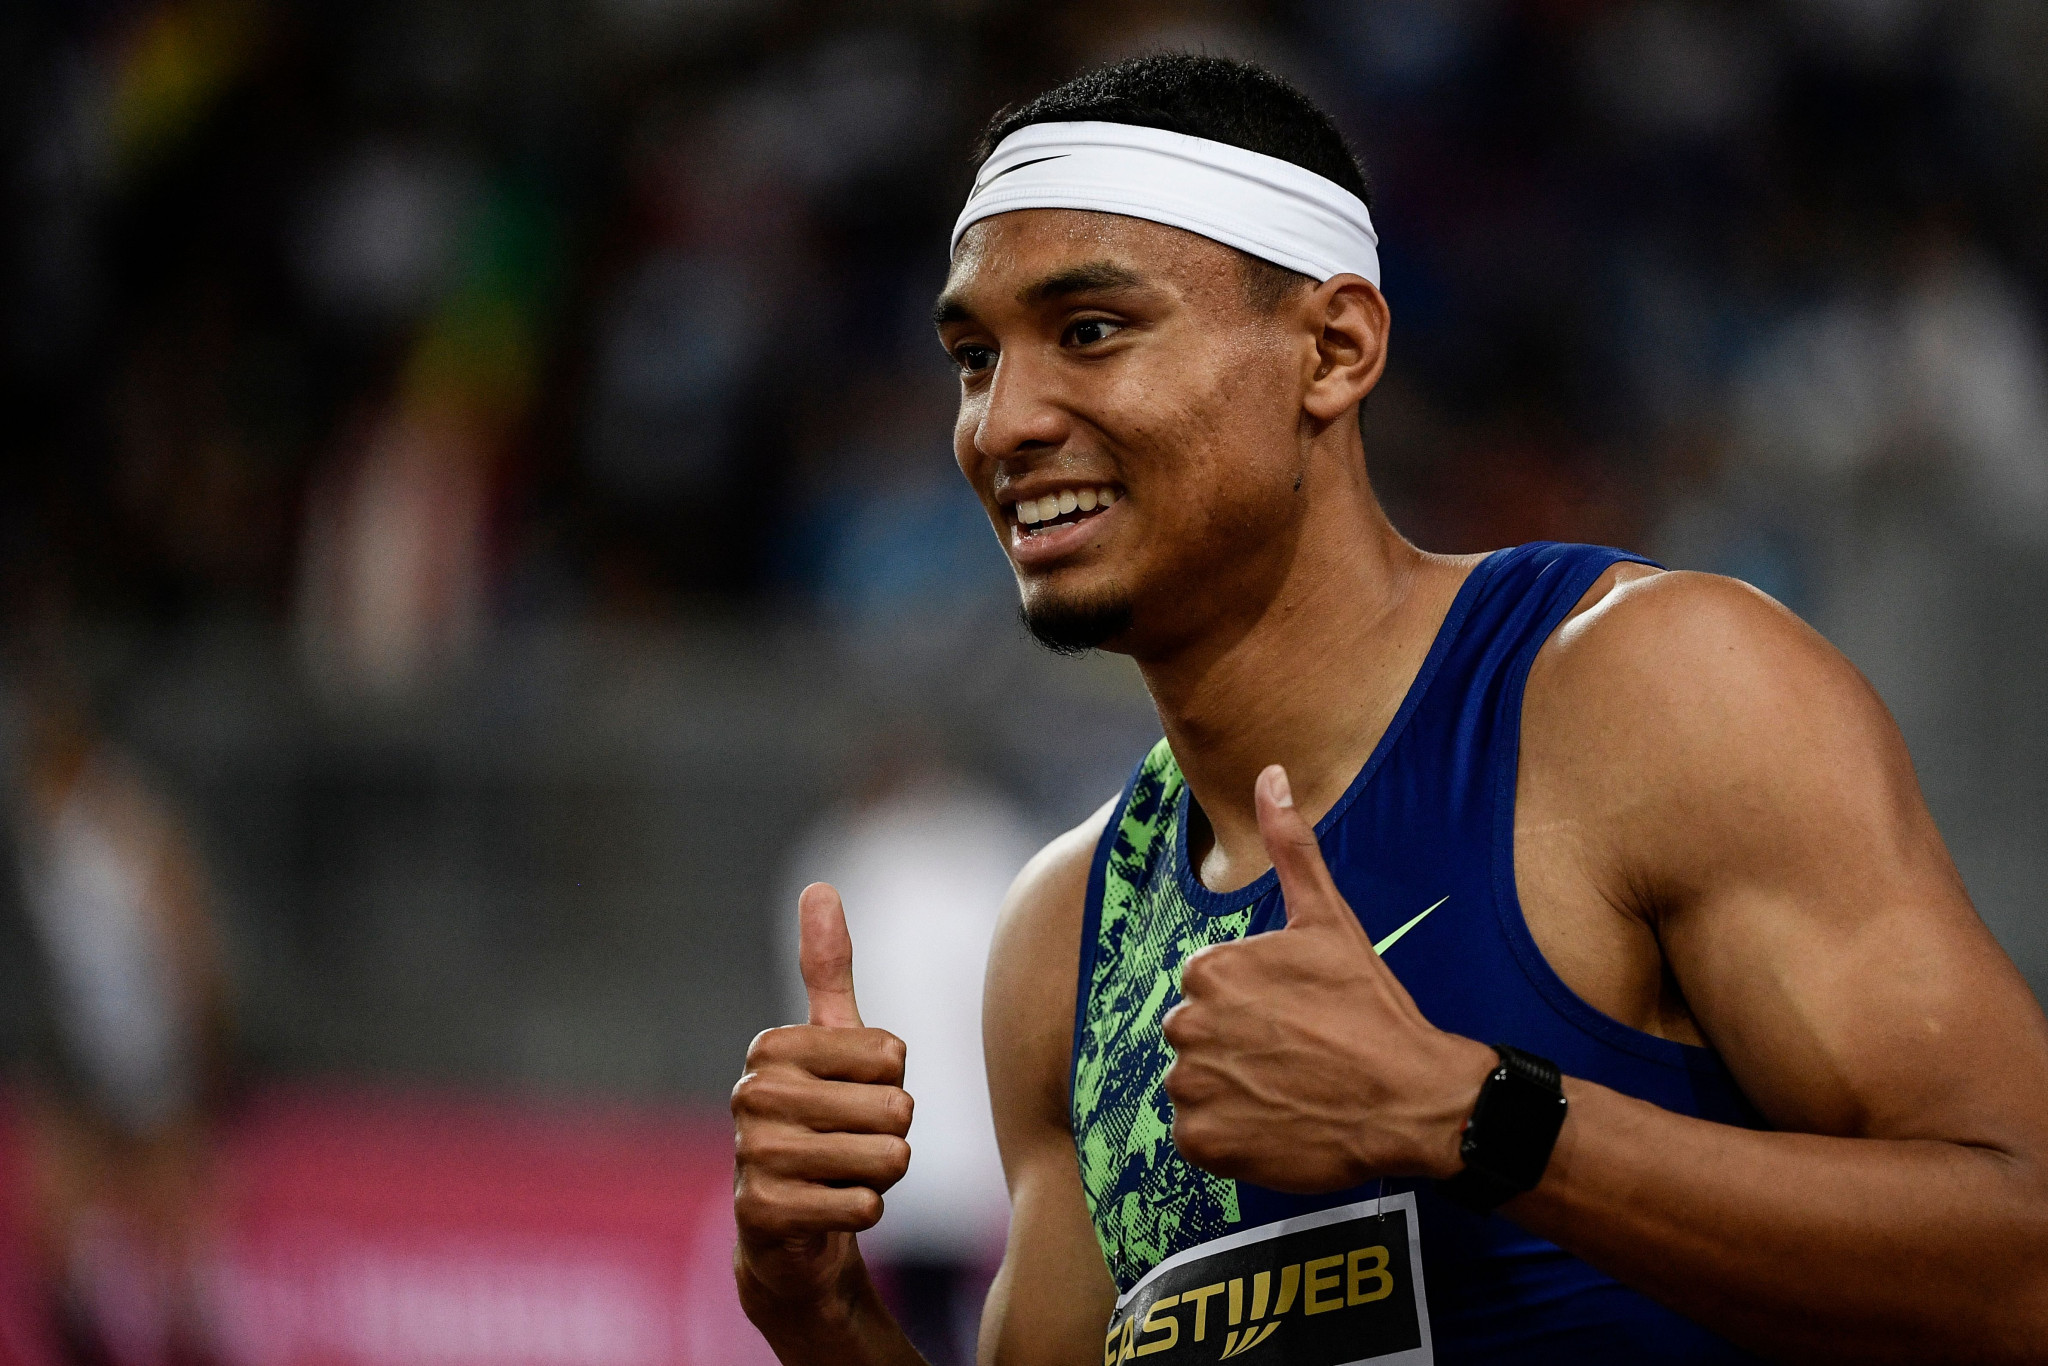 The United States' Michael Norman reacts after winning in Rome ©Getty Images